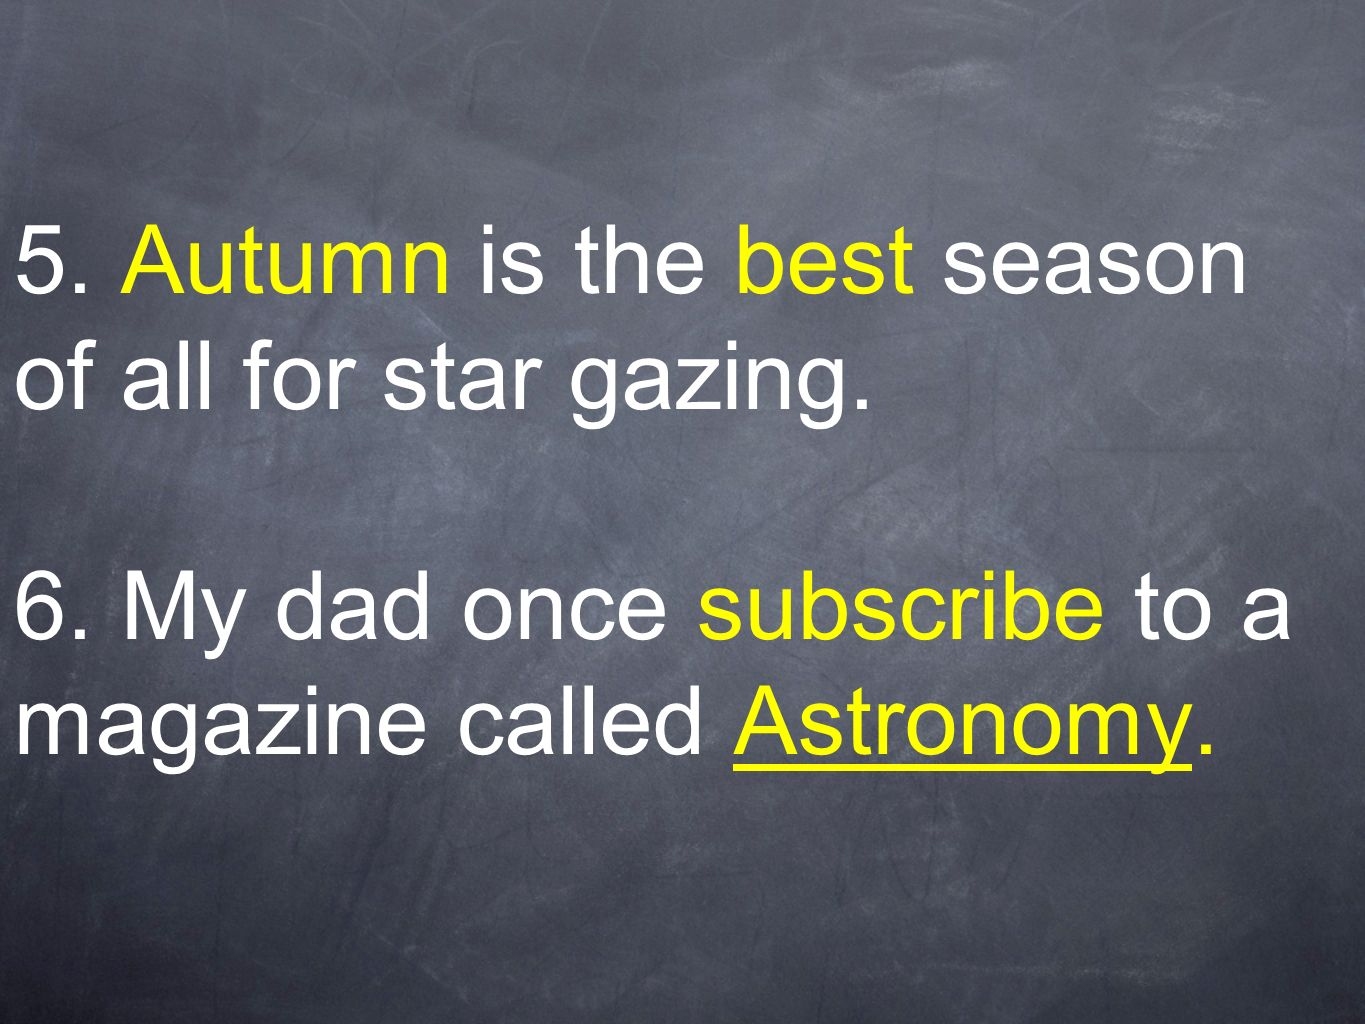 5. Autumn is the best season of all for star gazing.